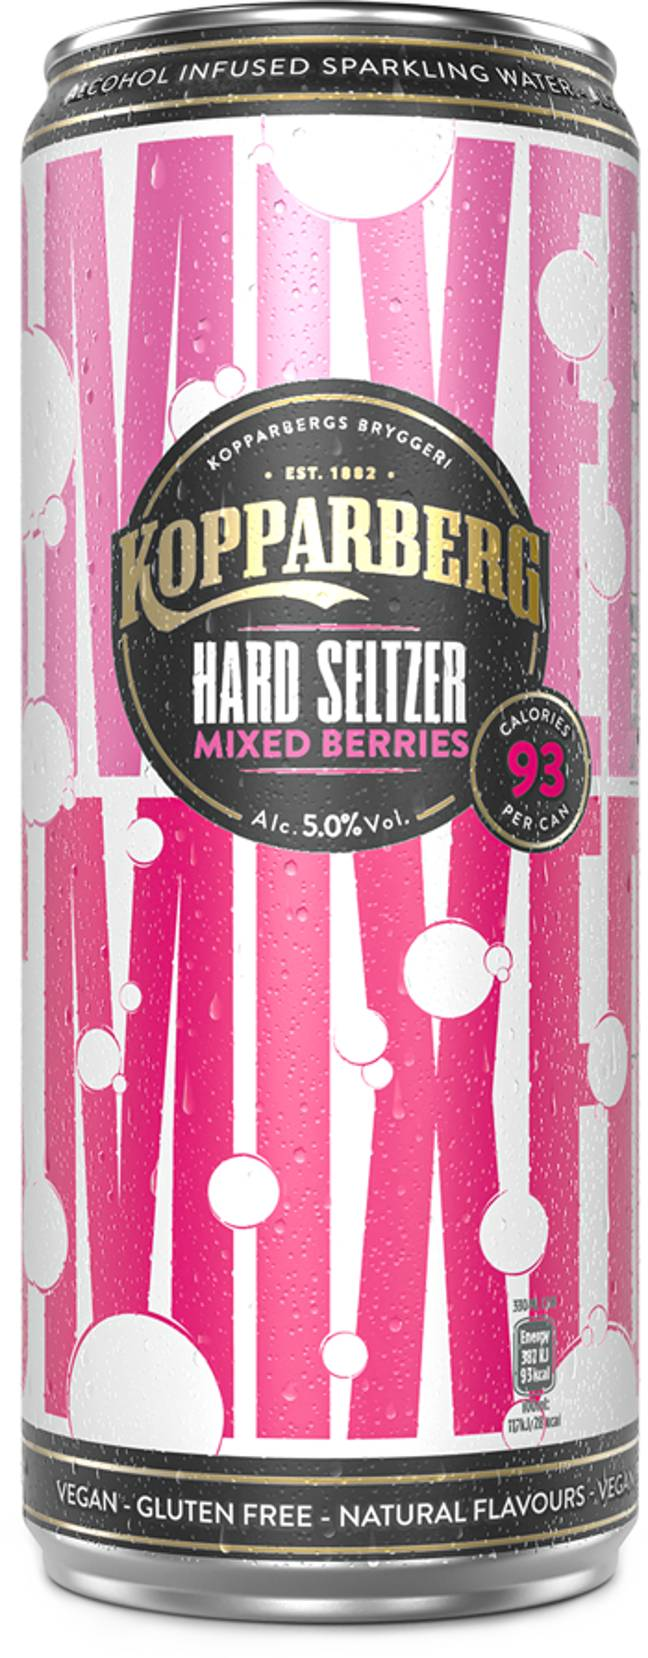 The cans will be available in three flavours. Credit: Kopparberg